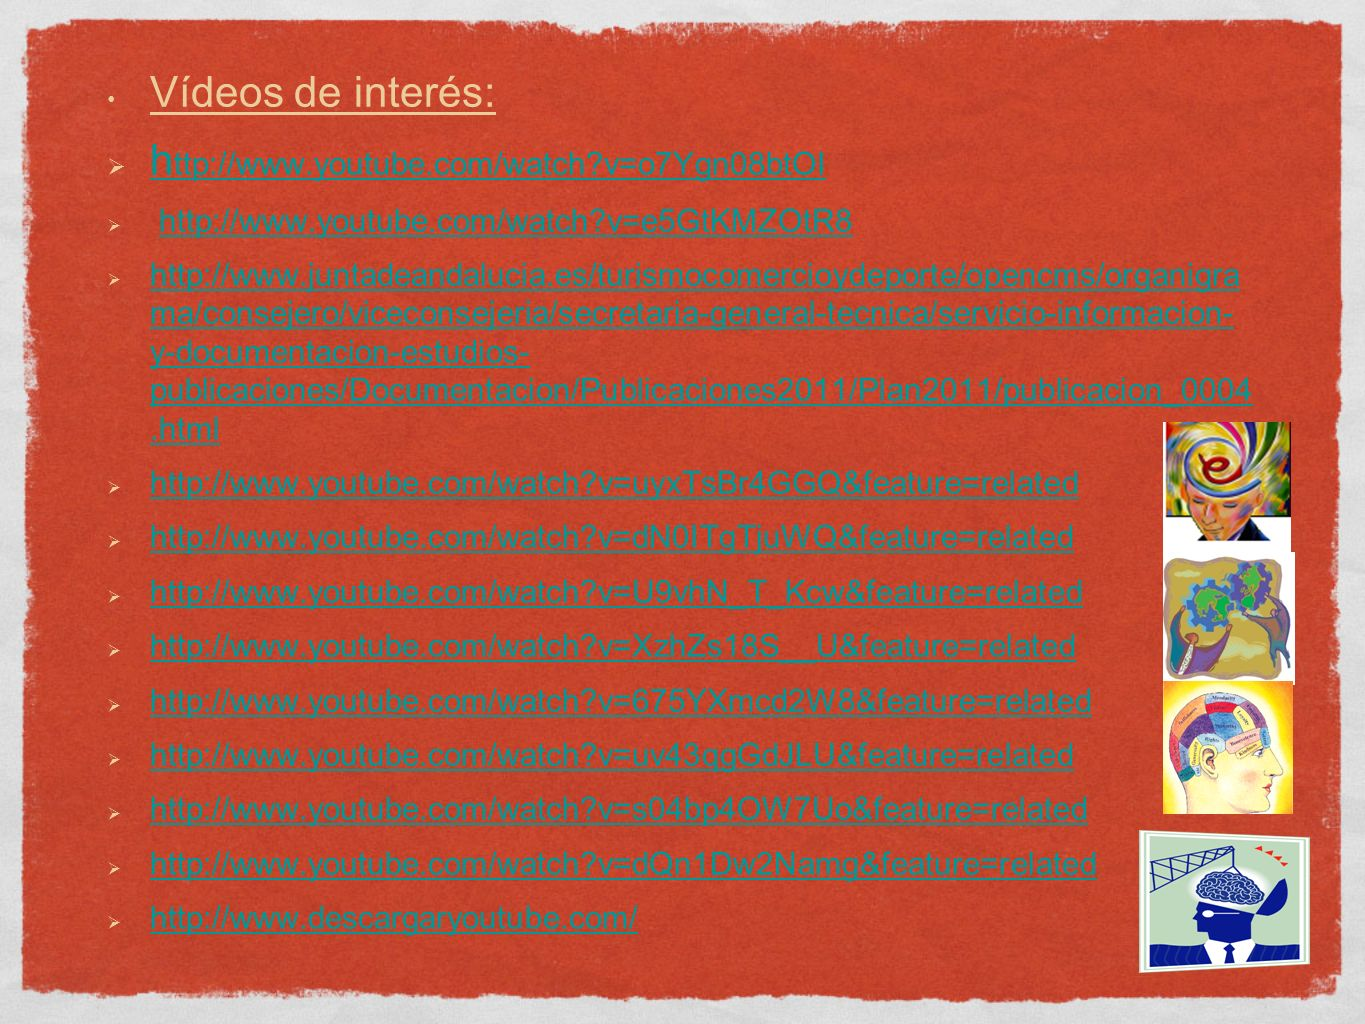 Vídeos de interés: h ttp://www.youtube.com/watch v=o7Ygn08btOI h ttp://www.youtube.com/watch v=o7Ygn08btOI http://www.youtube.com/watch v=e5GtKMZOtR8 http://www.juntadeandalucia.es/turismocomercioydeporte/opencms/organigra ma/consejero/viceconsejeria/secretaria-general-tecnica/servicio-informacion- y-documentacion-estudios- publicaciones/Documentacion/Publicaciones2011/Plan2011/publicacion_0004.html http://www.juntadeandalucia.es/turismocomercioydeporte/opencms/organigra ma/consejero/viceconsejeria/secretaria-general-tecnica/servicio-informacion- y-documentacion-estudios- publicaciones/Documentacion/Publicaciones2011/Plan2011/publicacion_0004.html http://www.youtube.com/watch v=uyxTsBr4GGQ&feature=related http://www.youtube.com/watch v=dN0ITgTjuWQ&feature=related http://www.youtube.com/watch v=U9vhN_T_Kcw&feature=related http://www.youtube.com/watch v=XzhZs18S__U&feature=related http://www.youtube.com/watch v=675YXmcd2W8&feature=related http://www.youtube.com/watch v=uv43qgGdJLU&feature=related http://www.youtube.com/watch v=s04bp4OW7Uo&feature=related http://www.youtube.com/watch v=dQn1Dw2Namg&feature=related http://www.descargaryoutube.com/